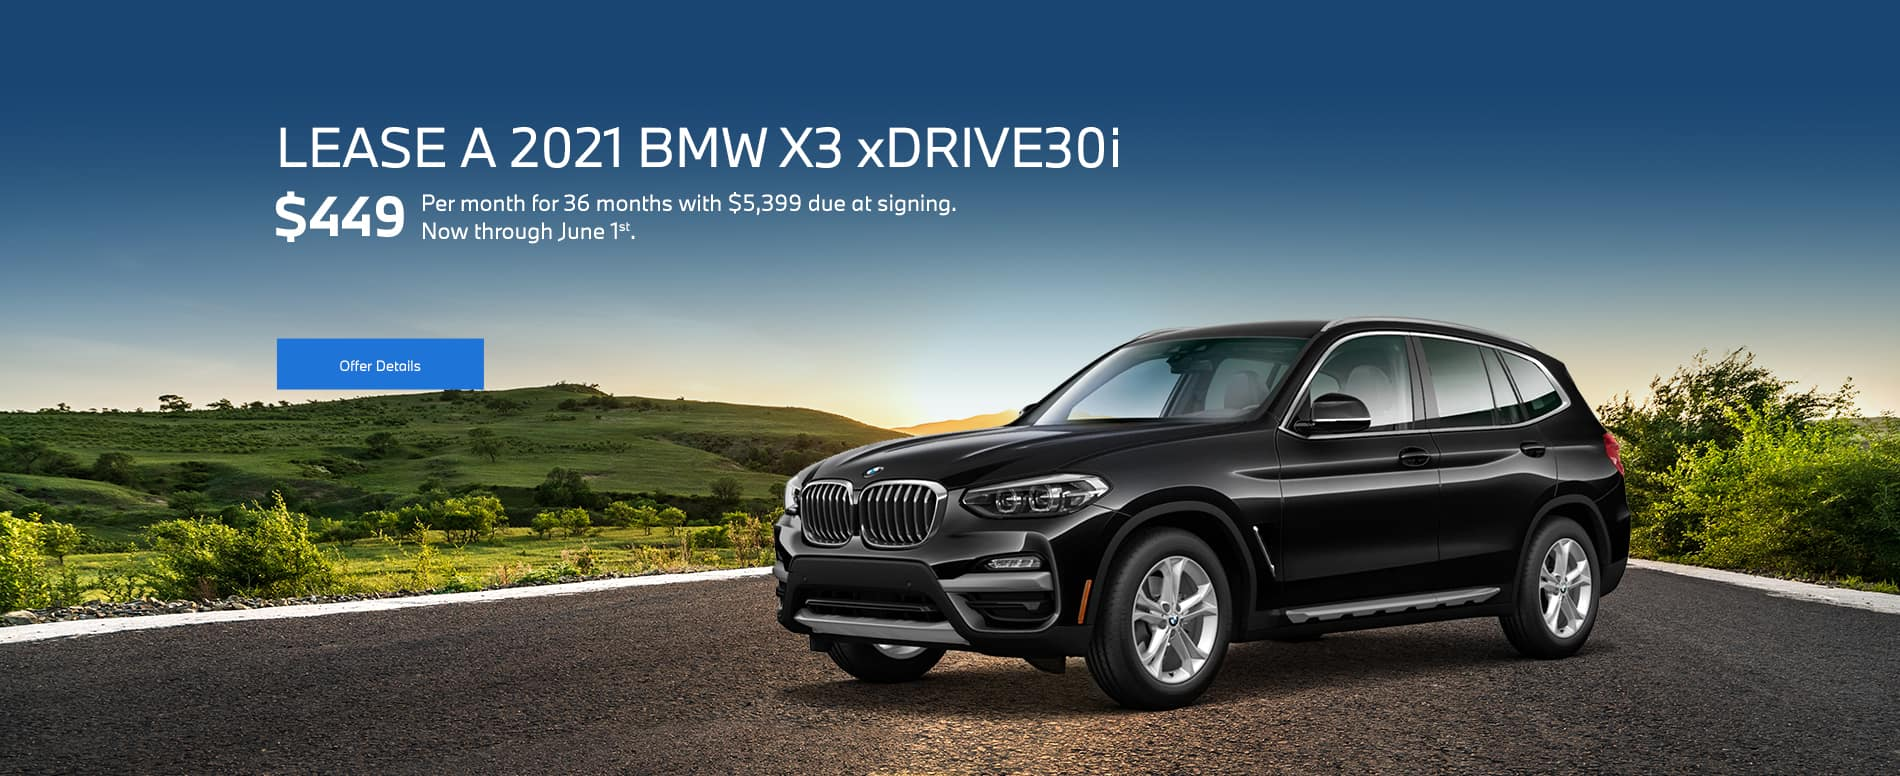 A black new 2021 BMW X3 leasing for $449 per month for 36 months with $5,399 due at signing